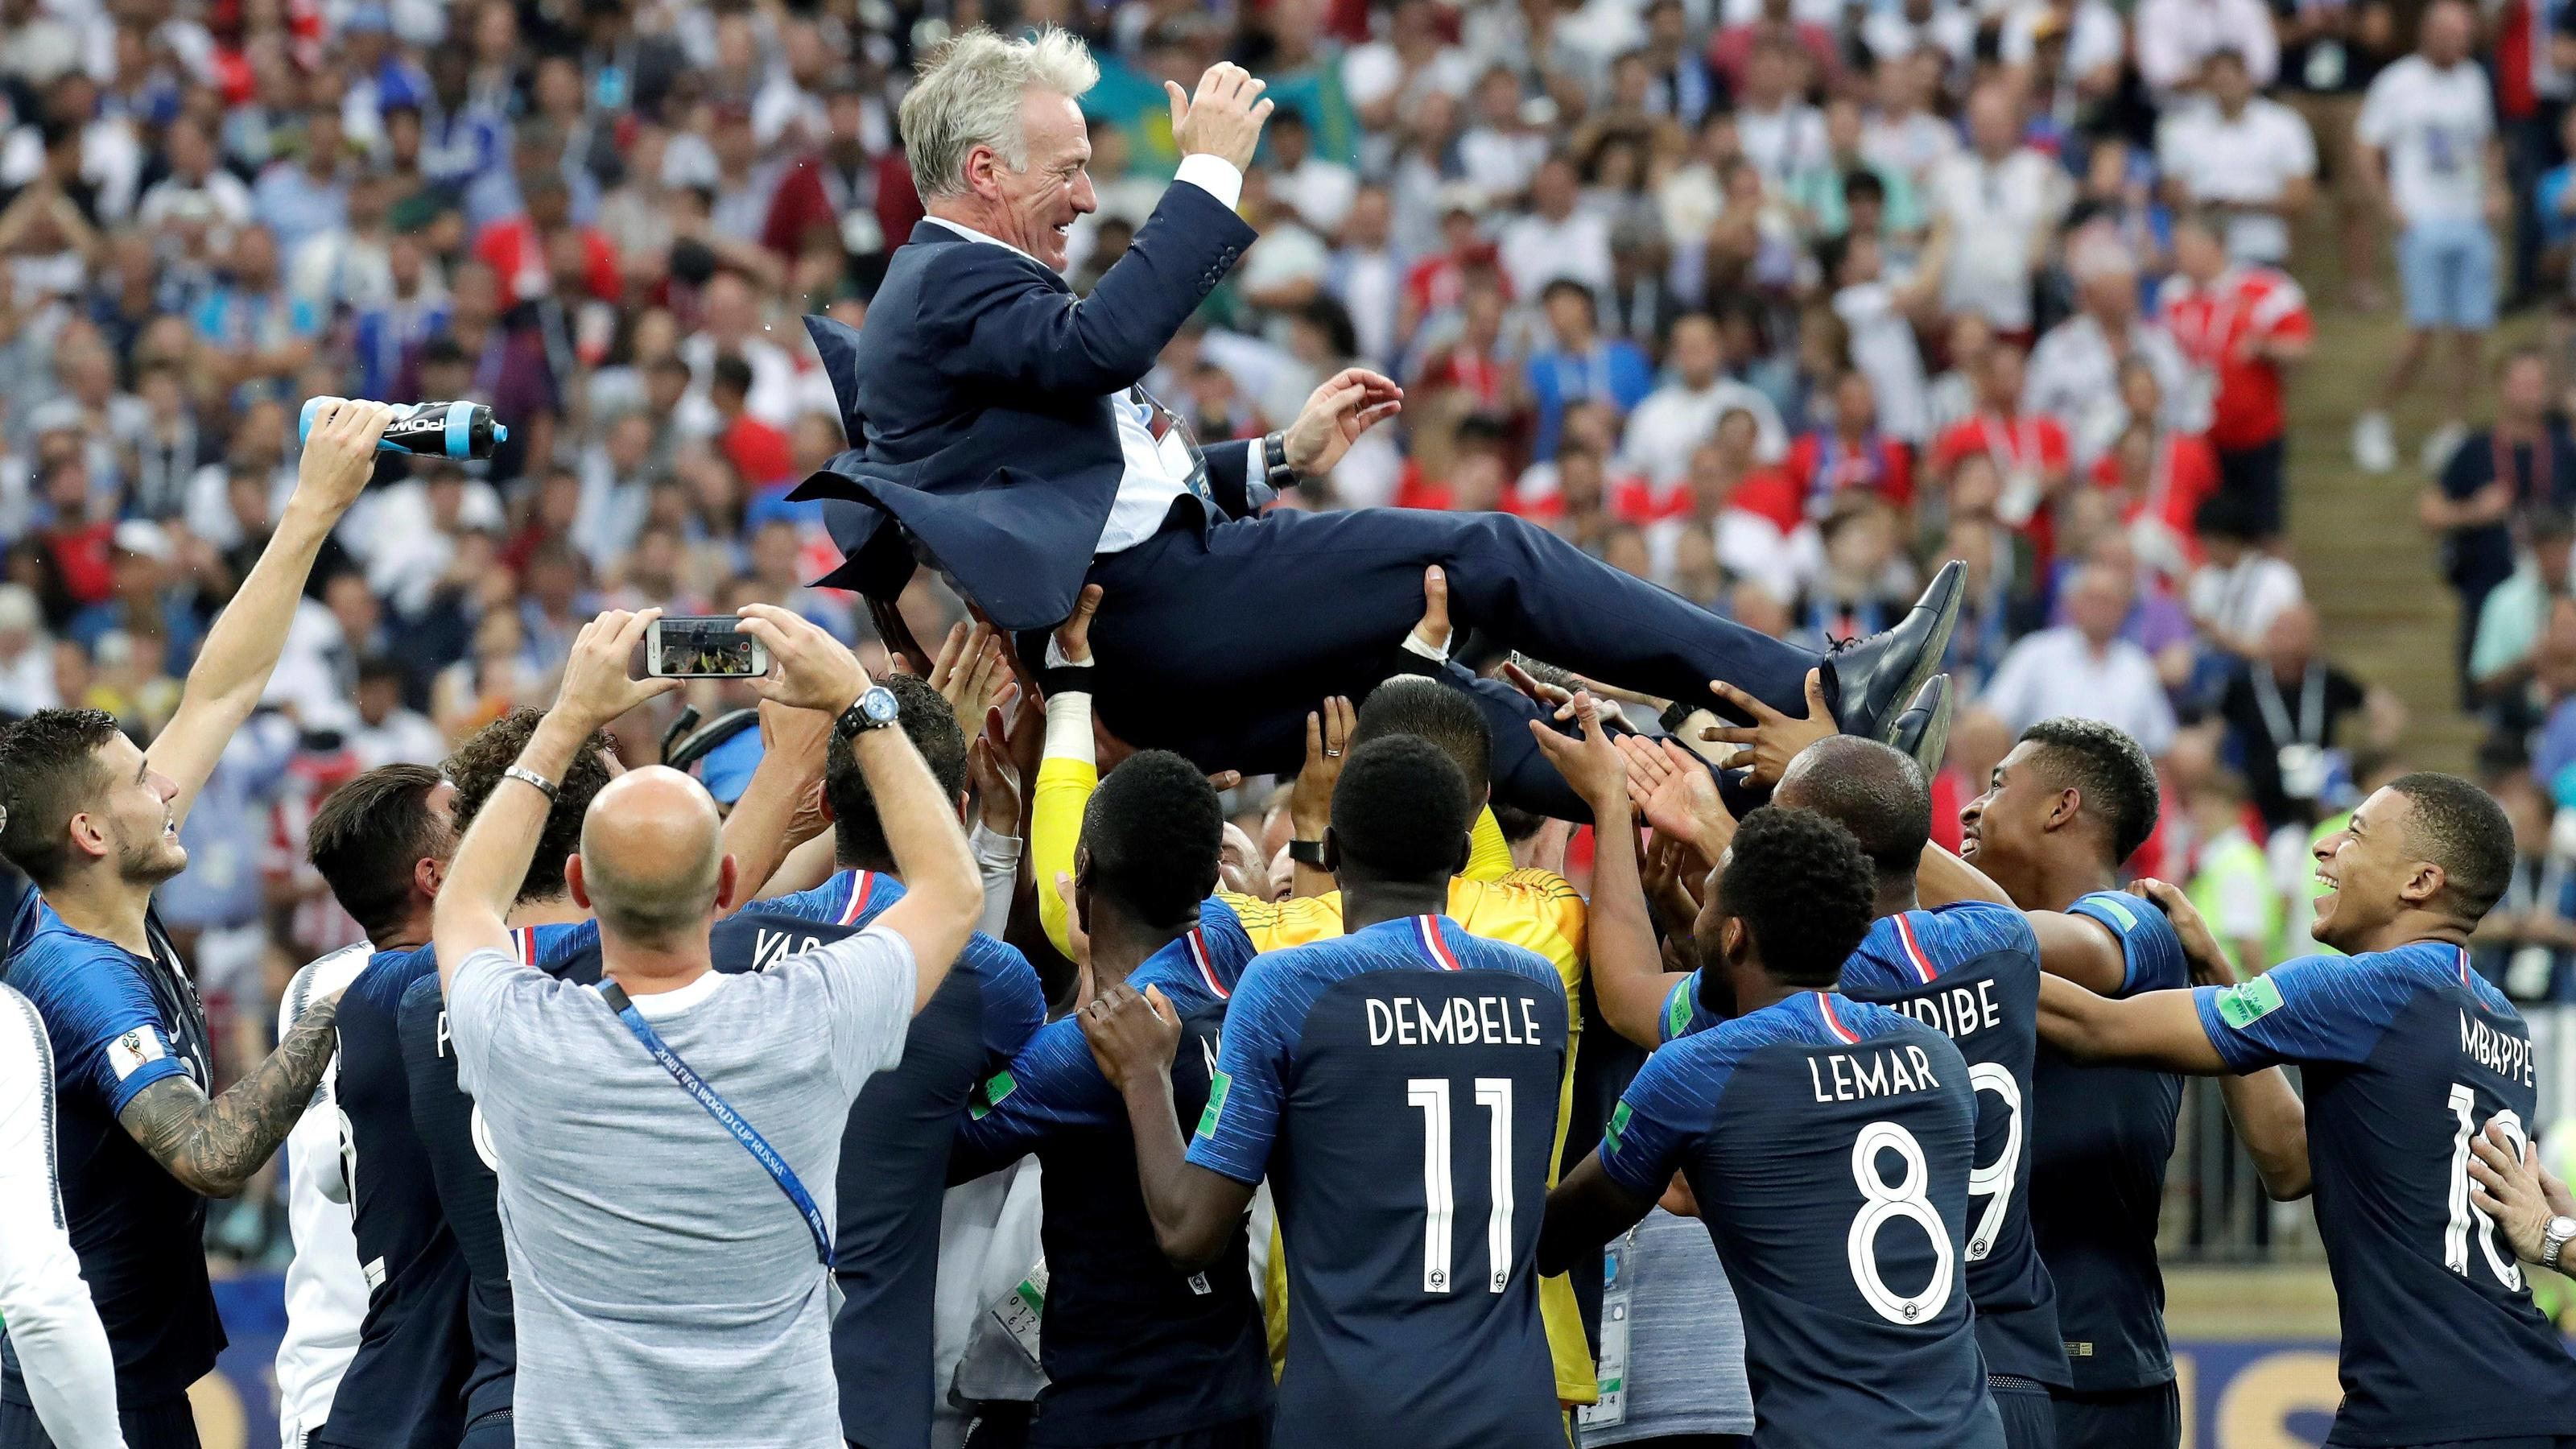 , France s head-coach Didier Deschamps after winning during the FIFA World Cup WM Weltmeisterschaft Fussball 2018 final soccer match between France and Croatia, at Luzhniki Stadium in Moscu, Russia, 15 July 2018. FRANCE VS. CROATIA !ACHTUNG: NUR REDA